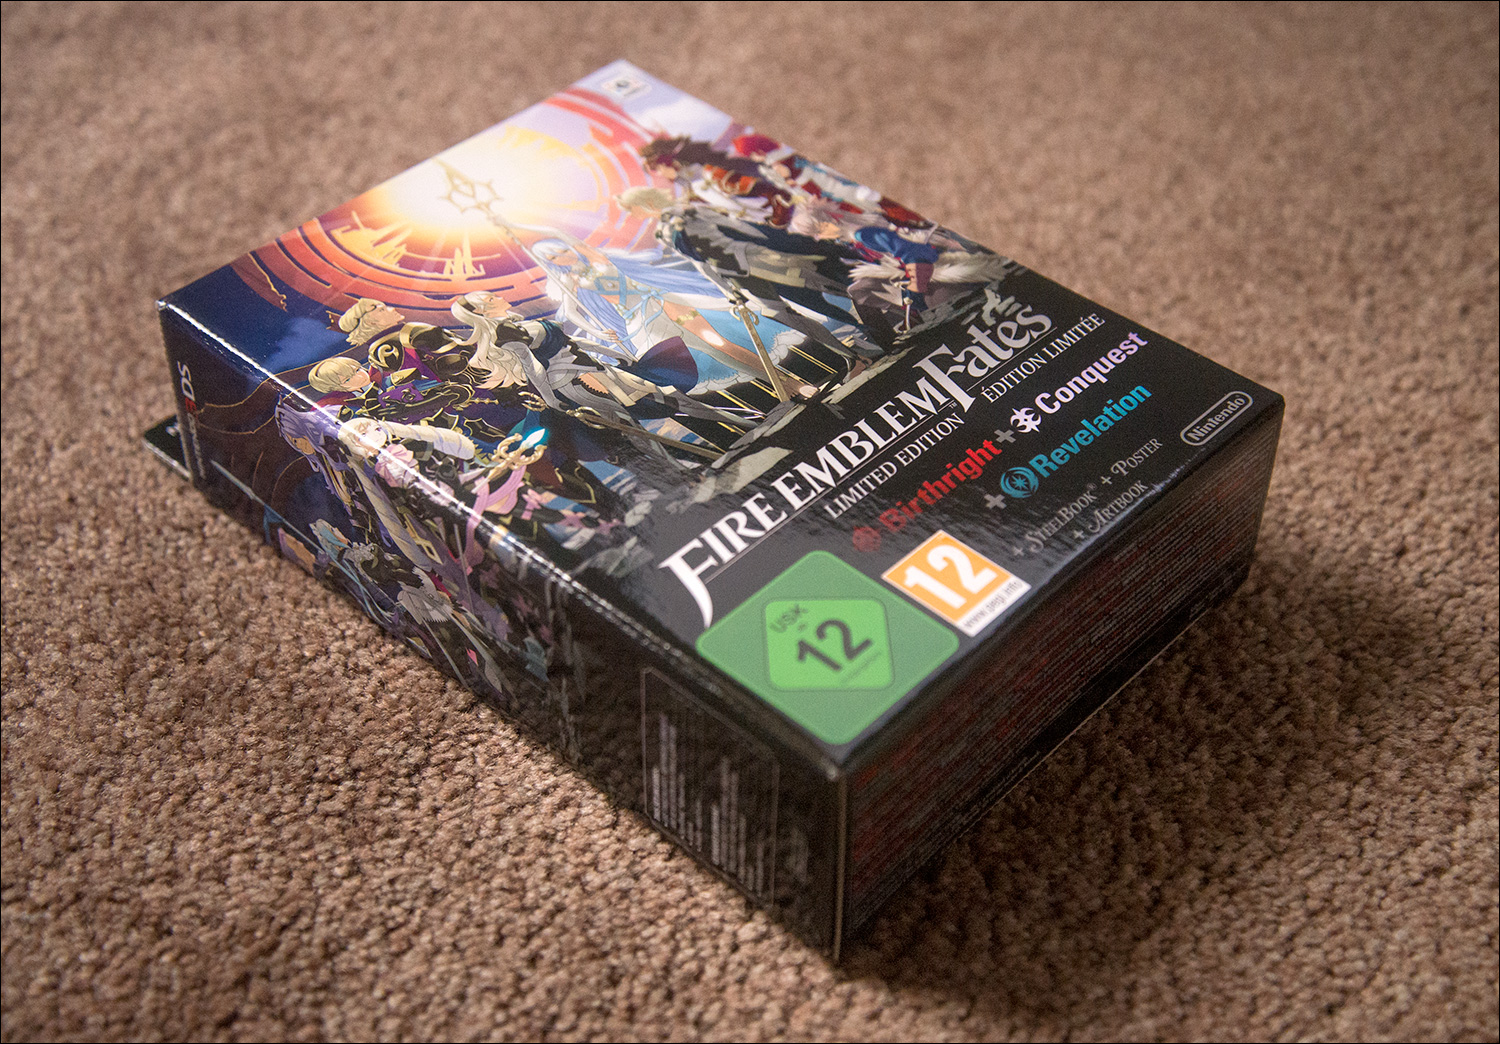 Fire Emblem Fates Special Edition, contains all 3 games on 1 cartridge, double sided poster, art book and steelbook